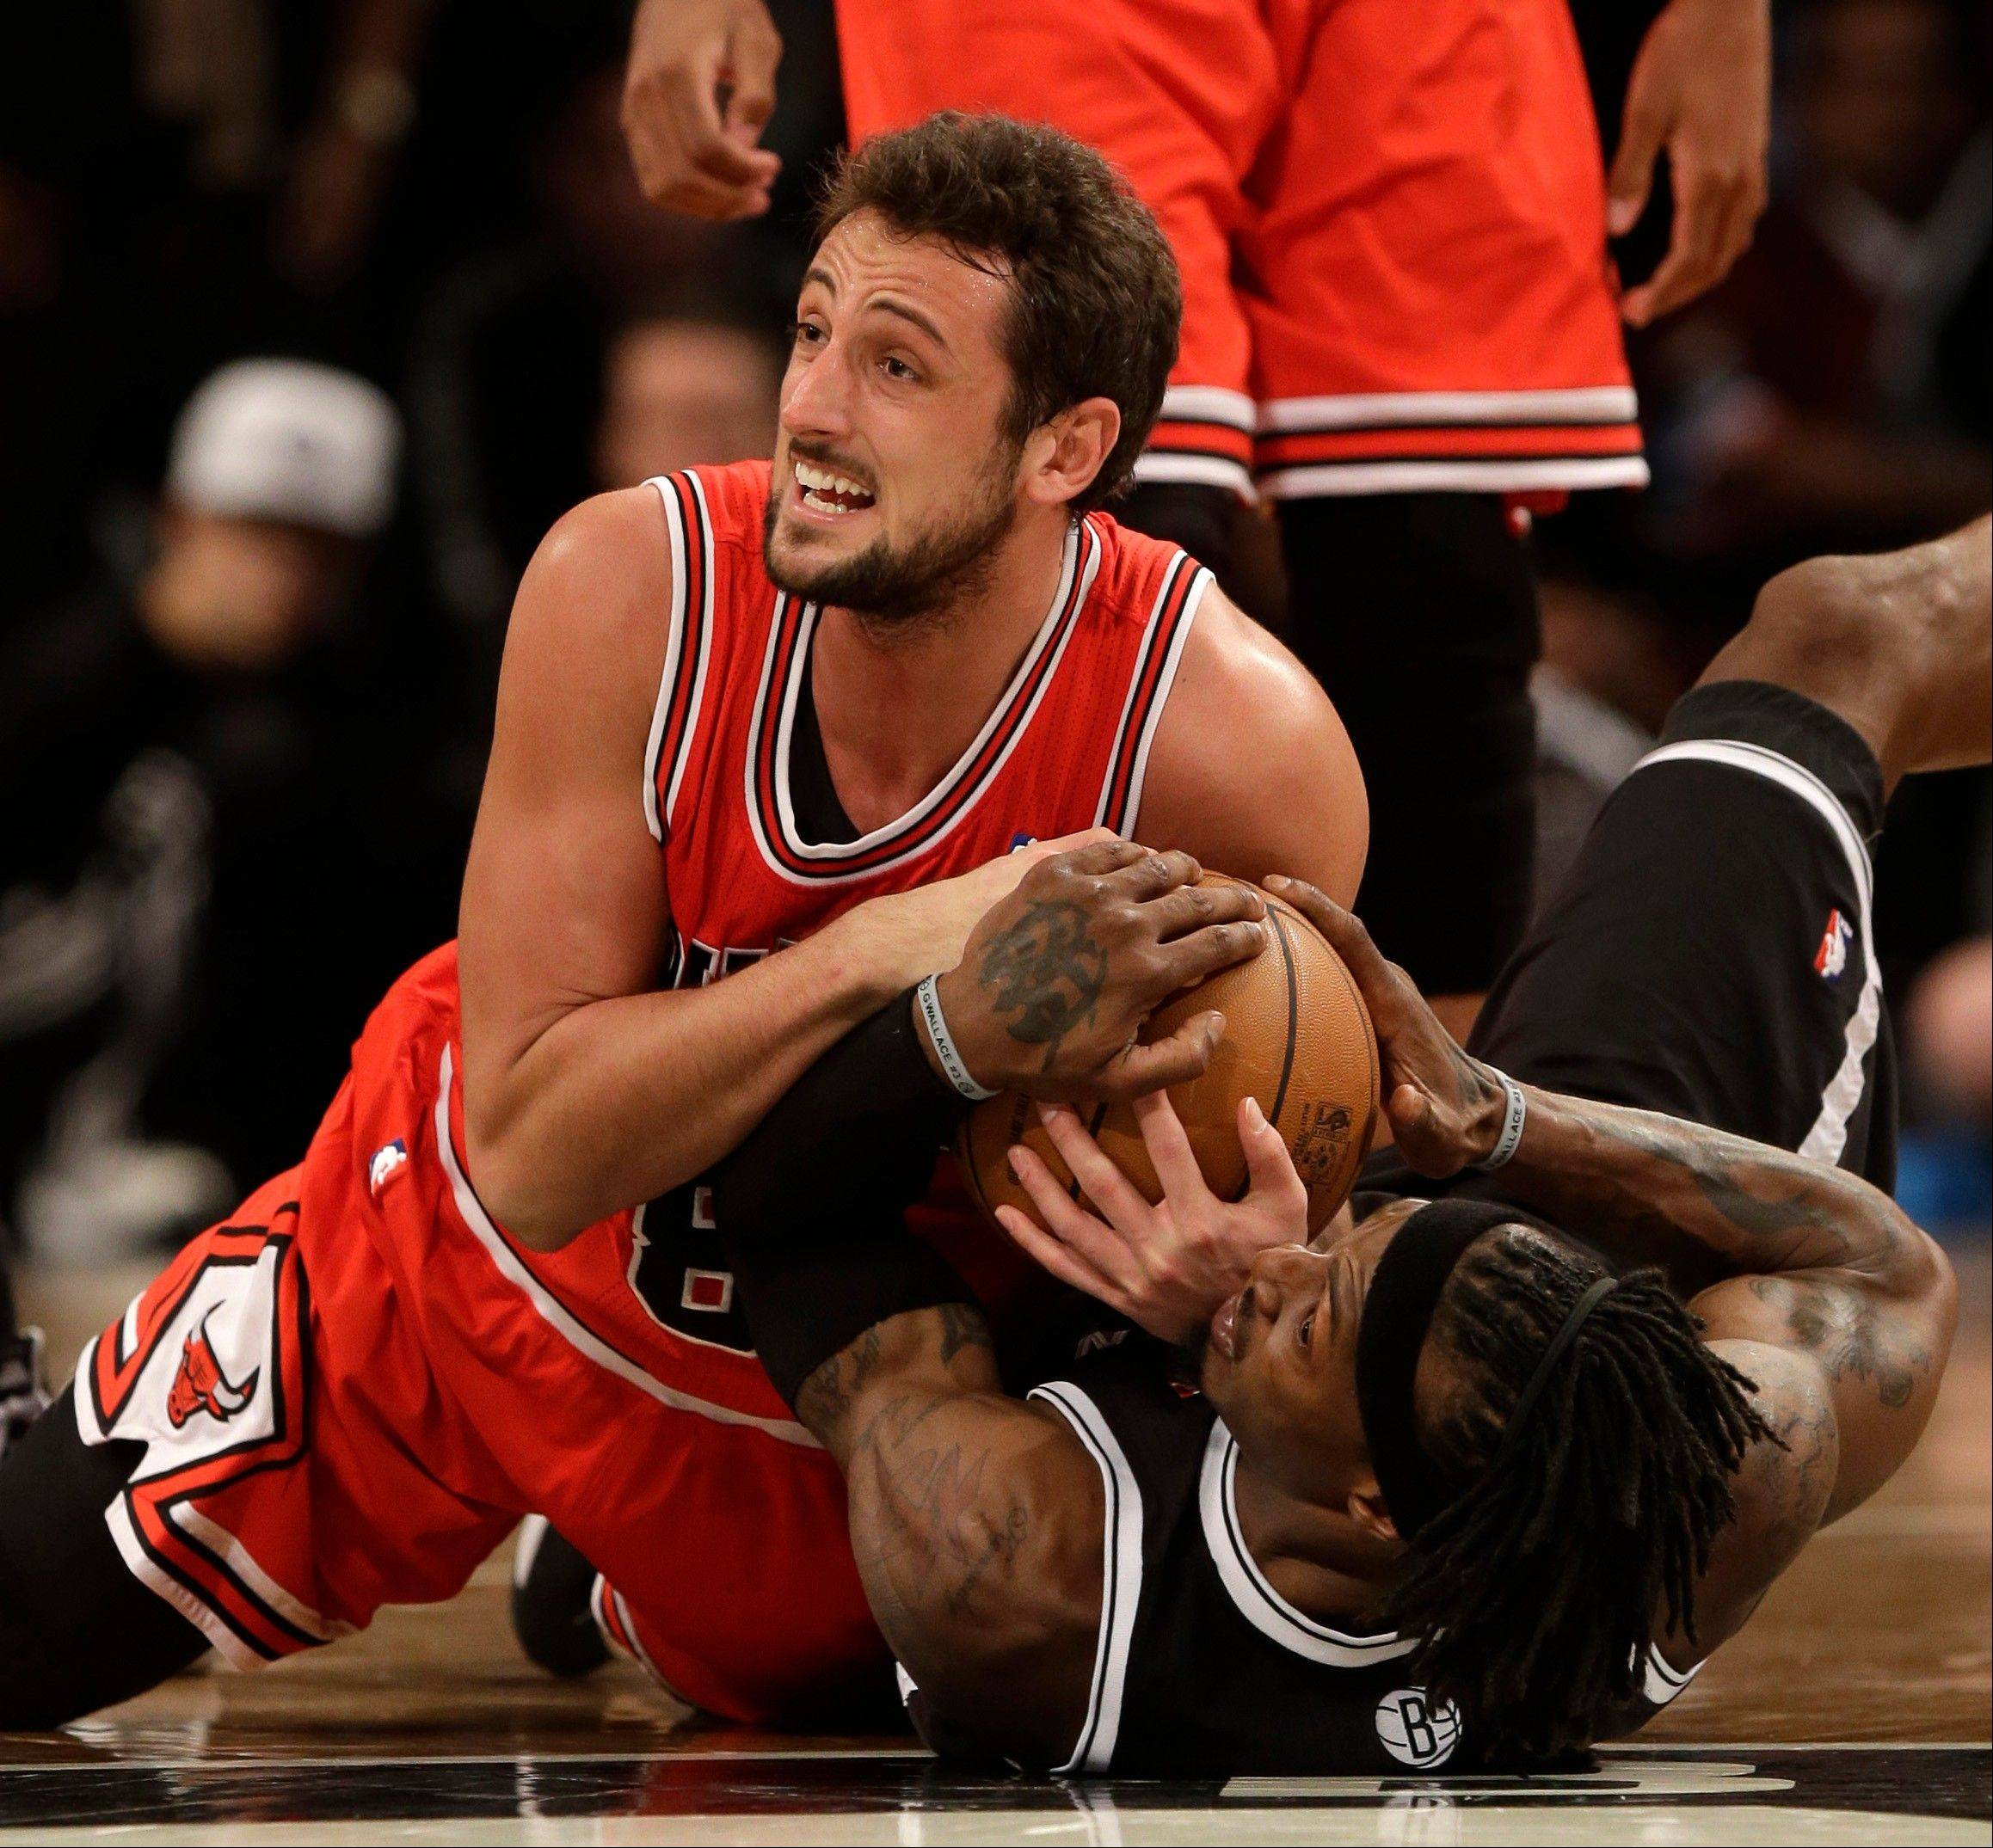 Chicago�s Marco Belinelli, top, and Brooklyn�s Gerald Wallace fight for a loose ball during Saturday�s playoff game, which the Bulls lost 106-89.